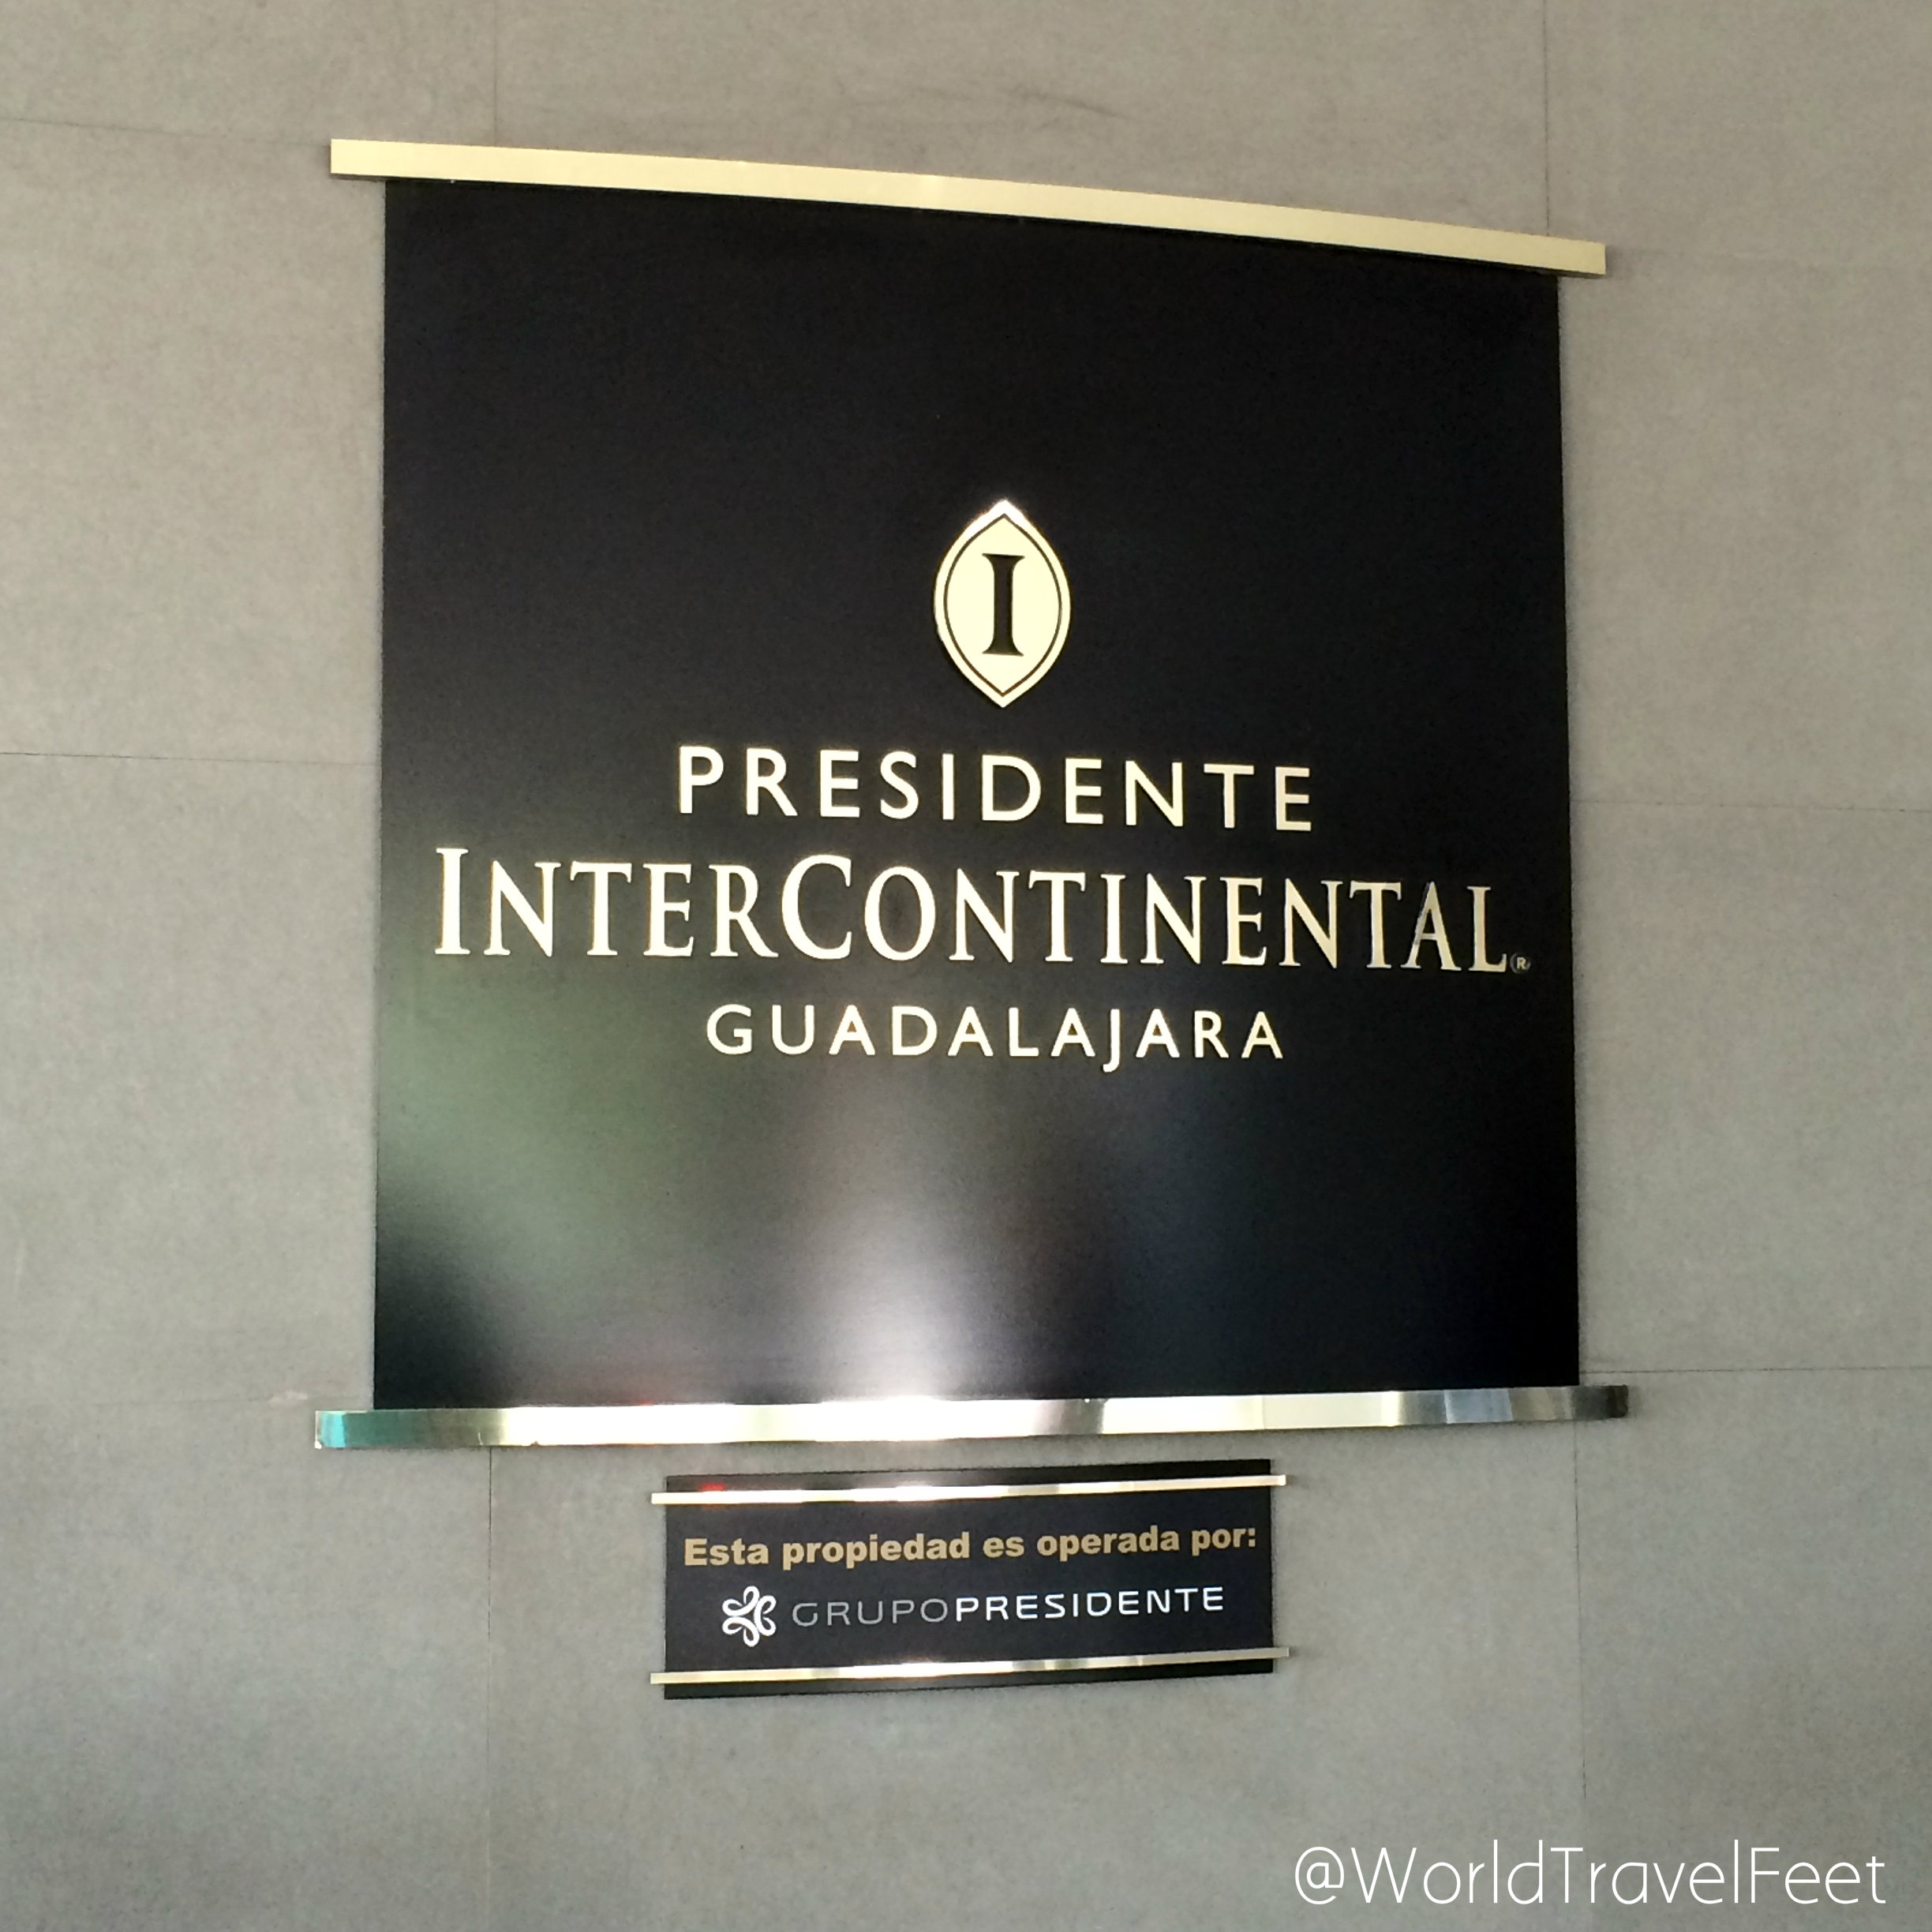 Presidente Intercontinental - Guadalajara